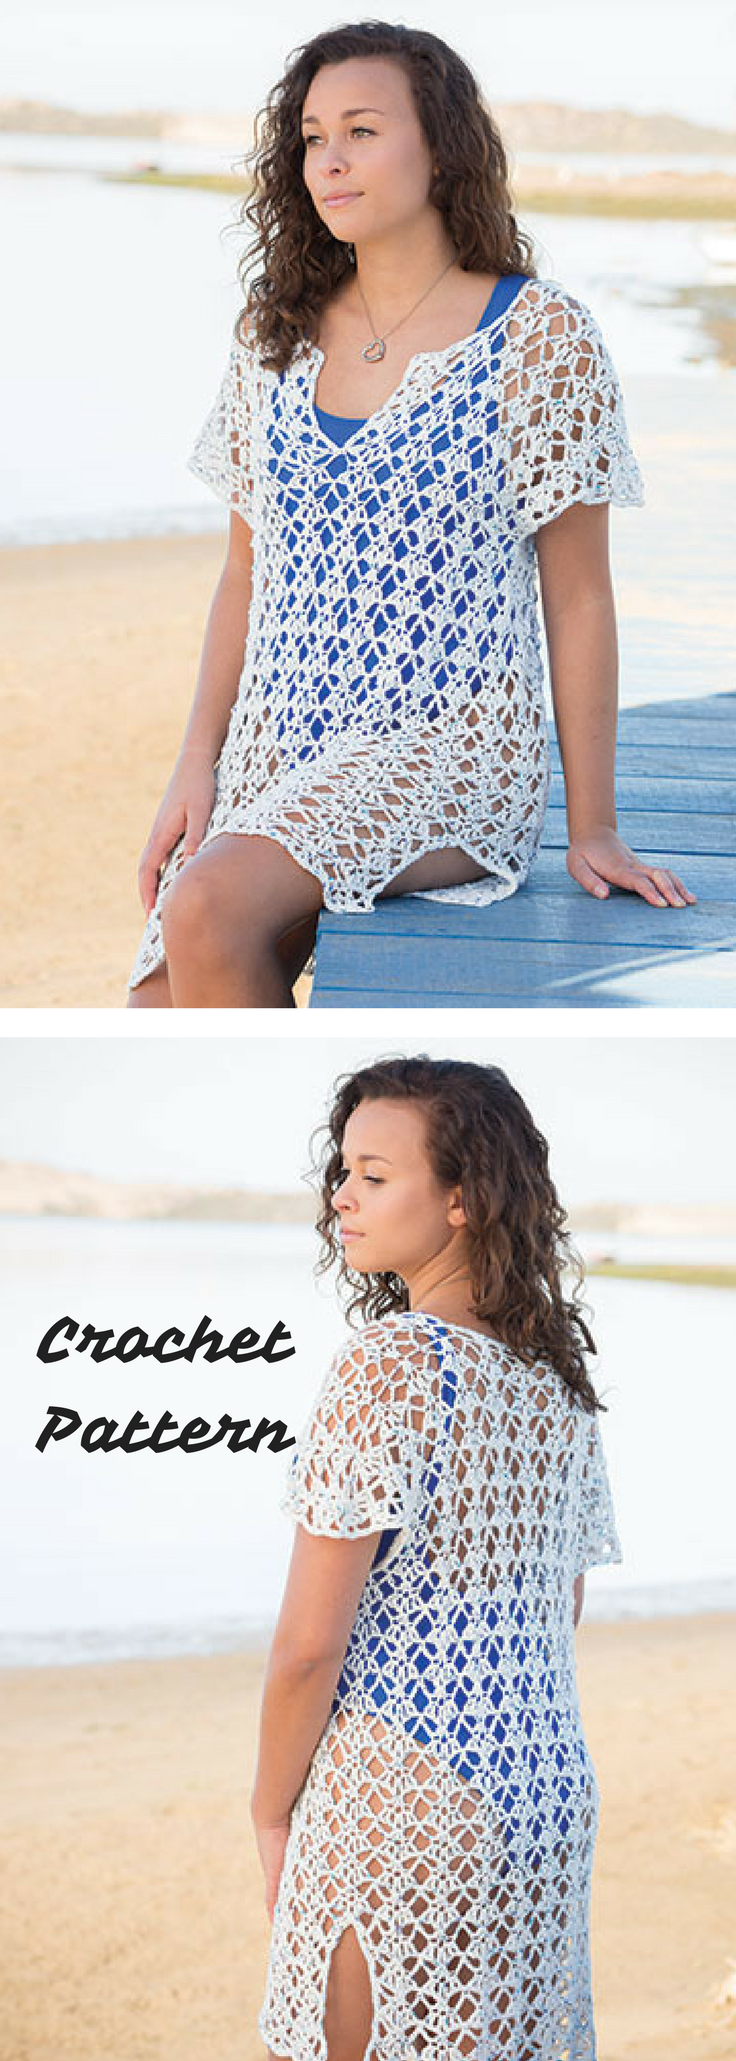 Crochet Swimsuit Cover Up Pattern Awesome Inspiration